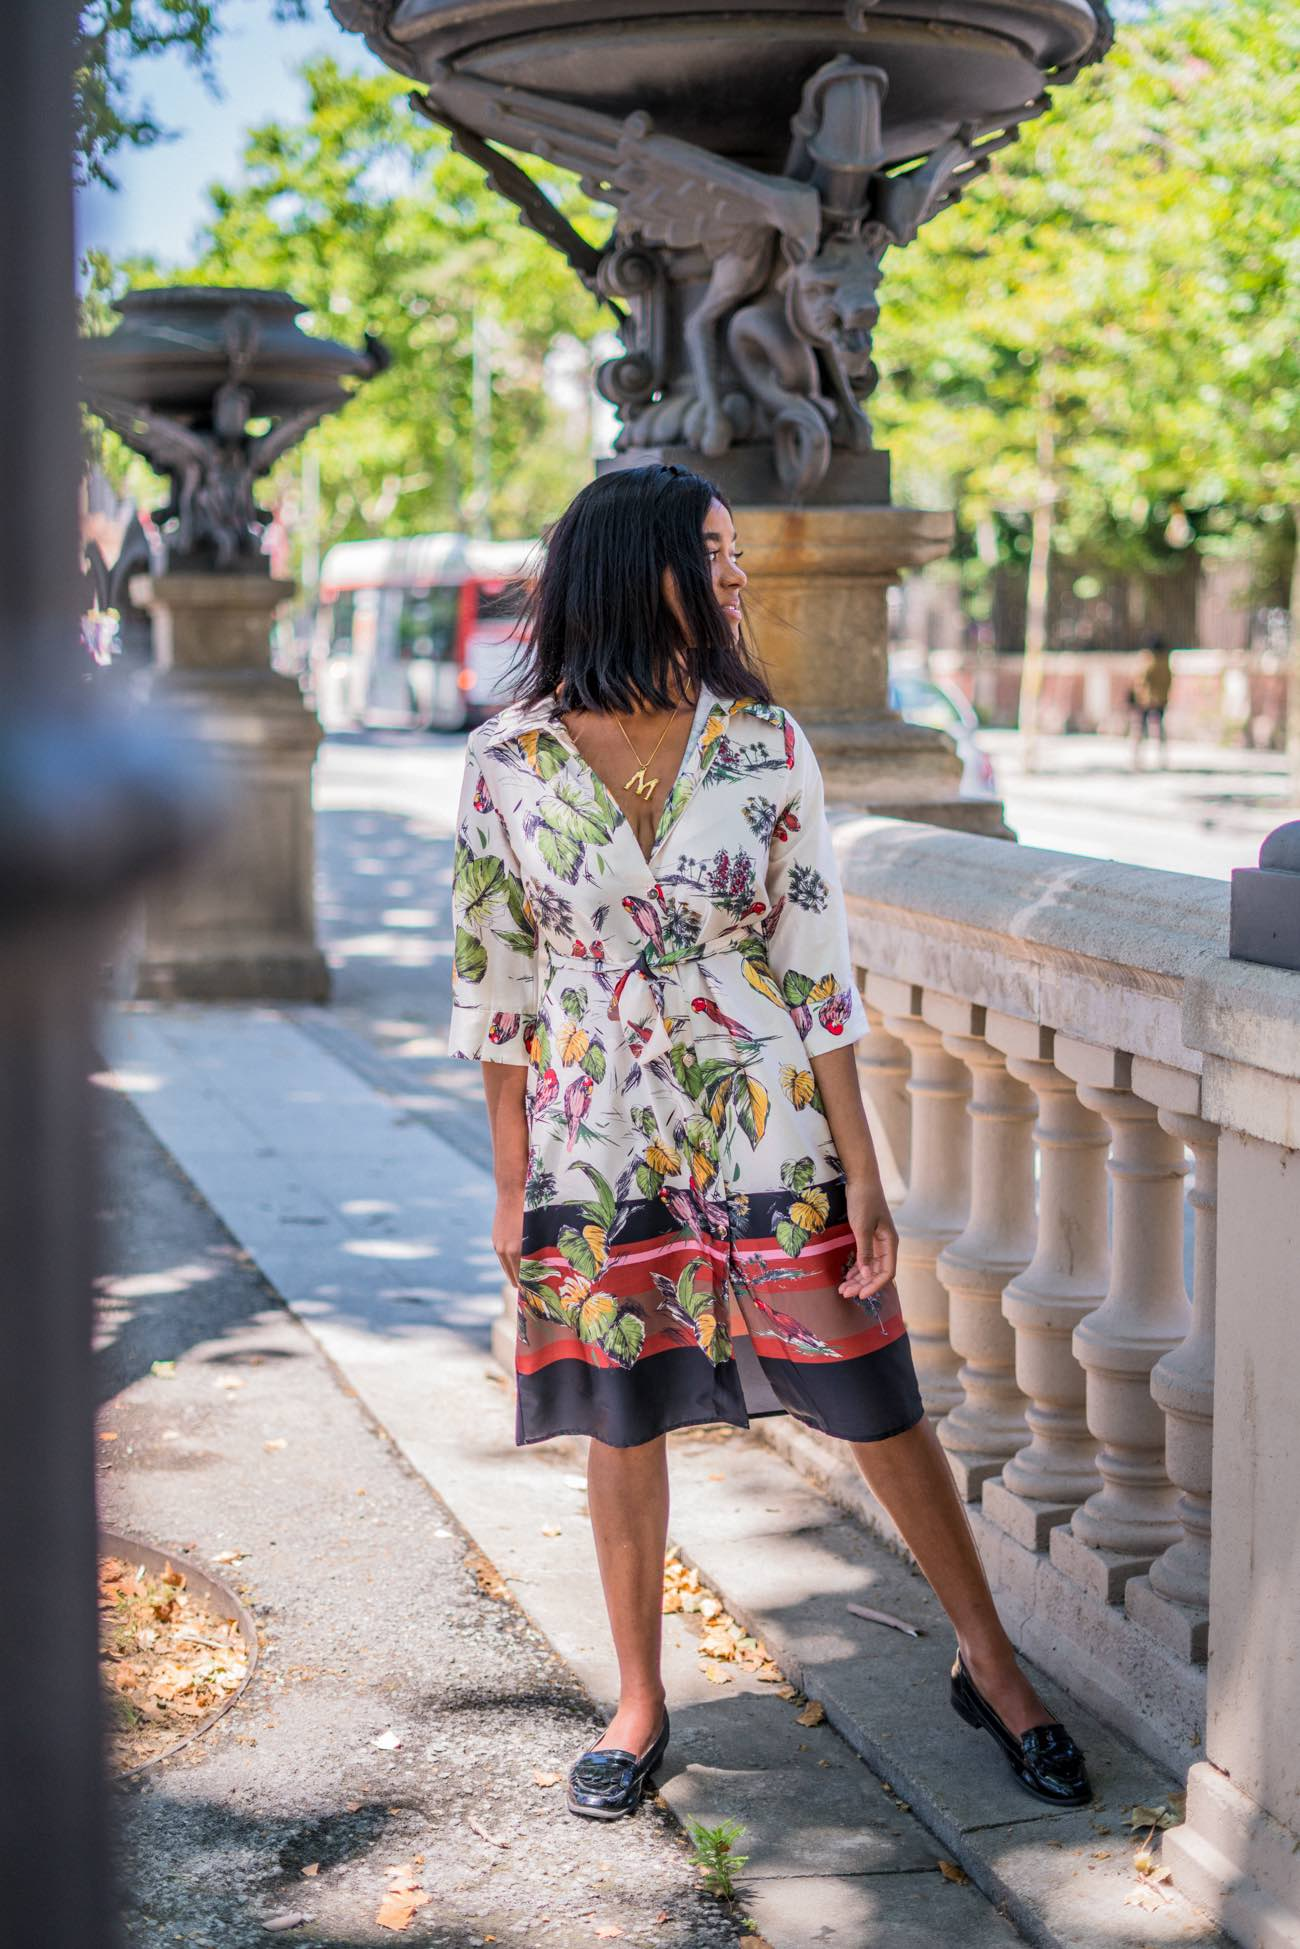 Pretty girl in a floral shirt dress - compare yourself to others